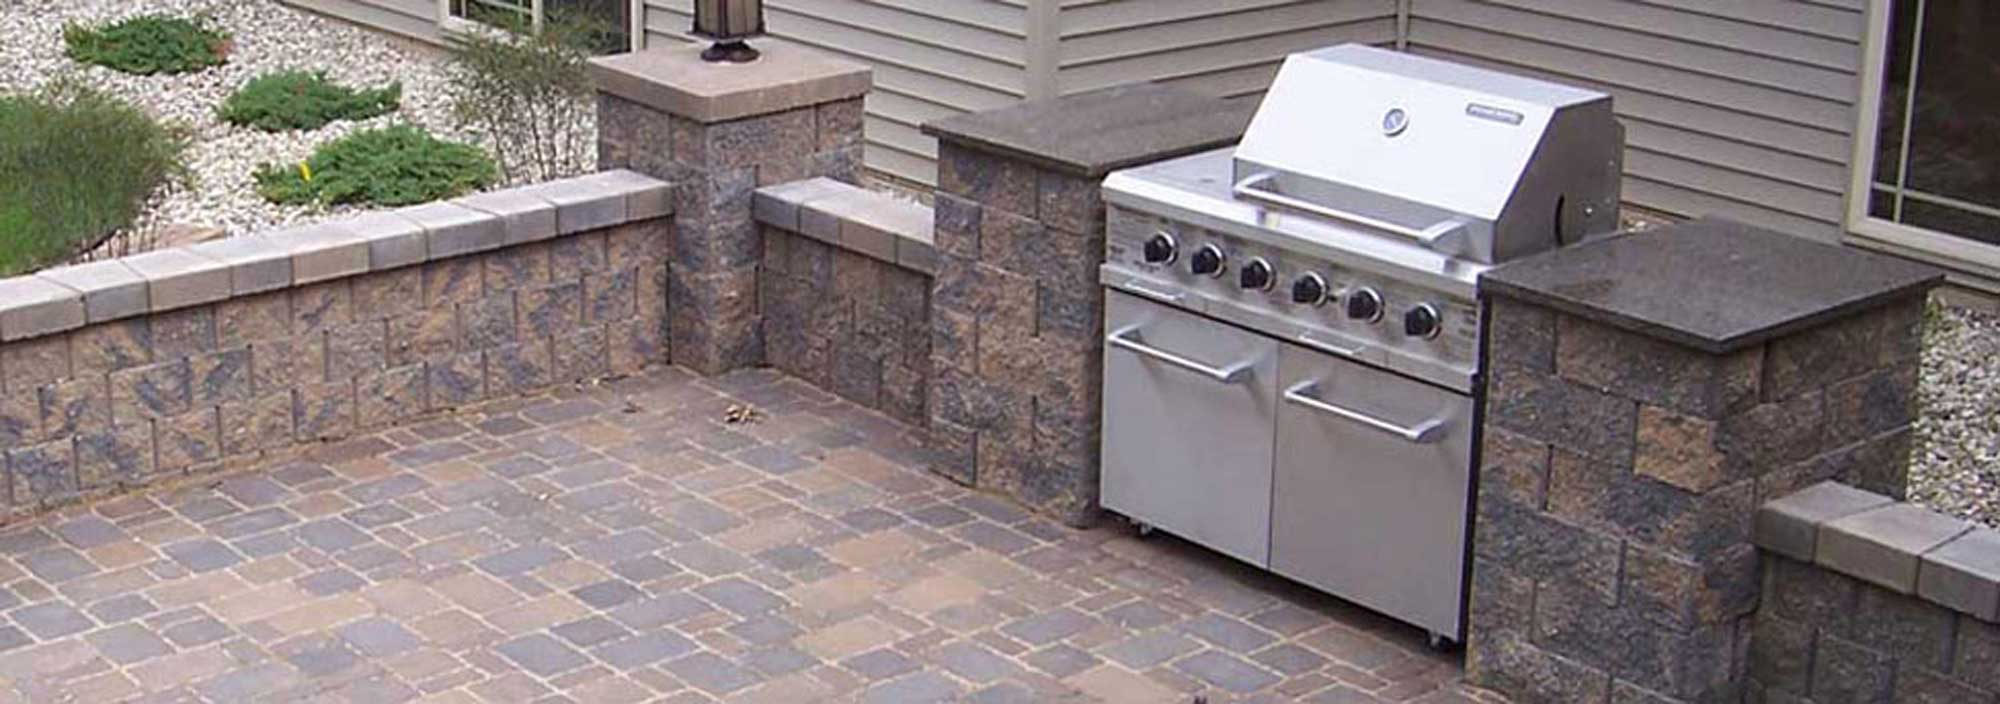 How To Build A Bbq Grilling Station Or Bbq Grill Surround